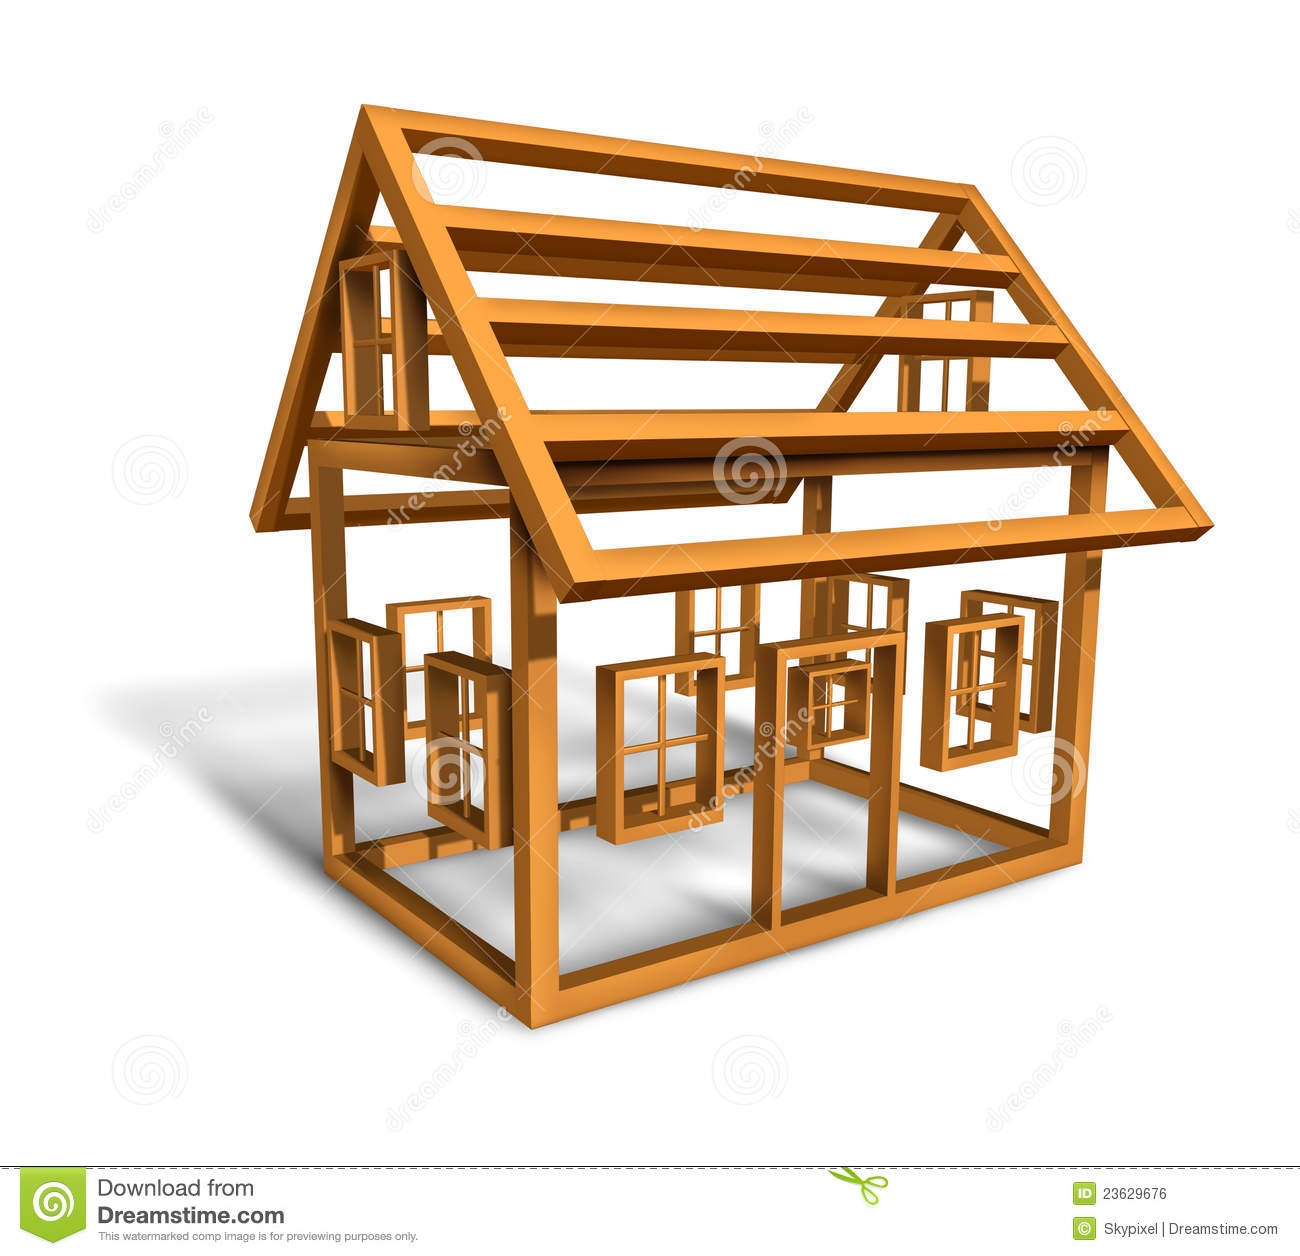 Home under construction clipart.